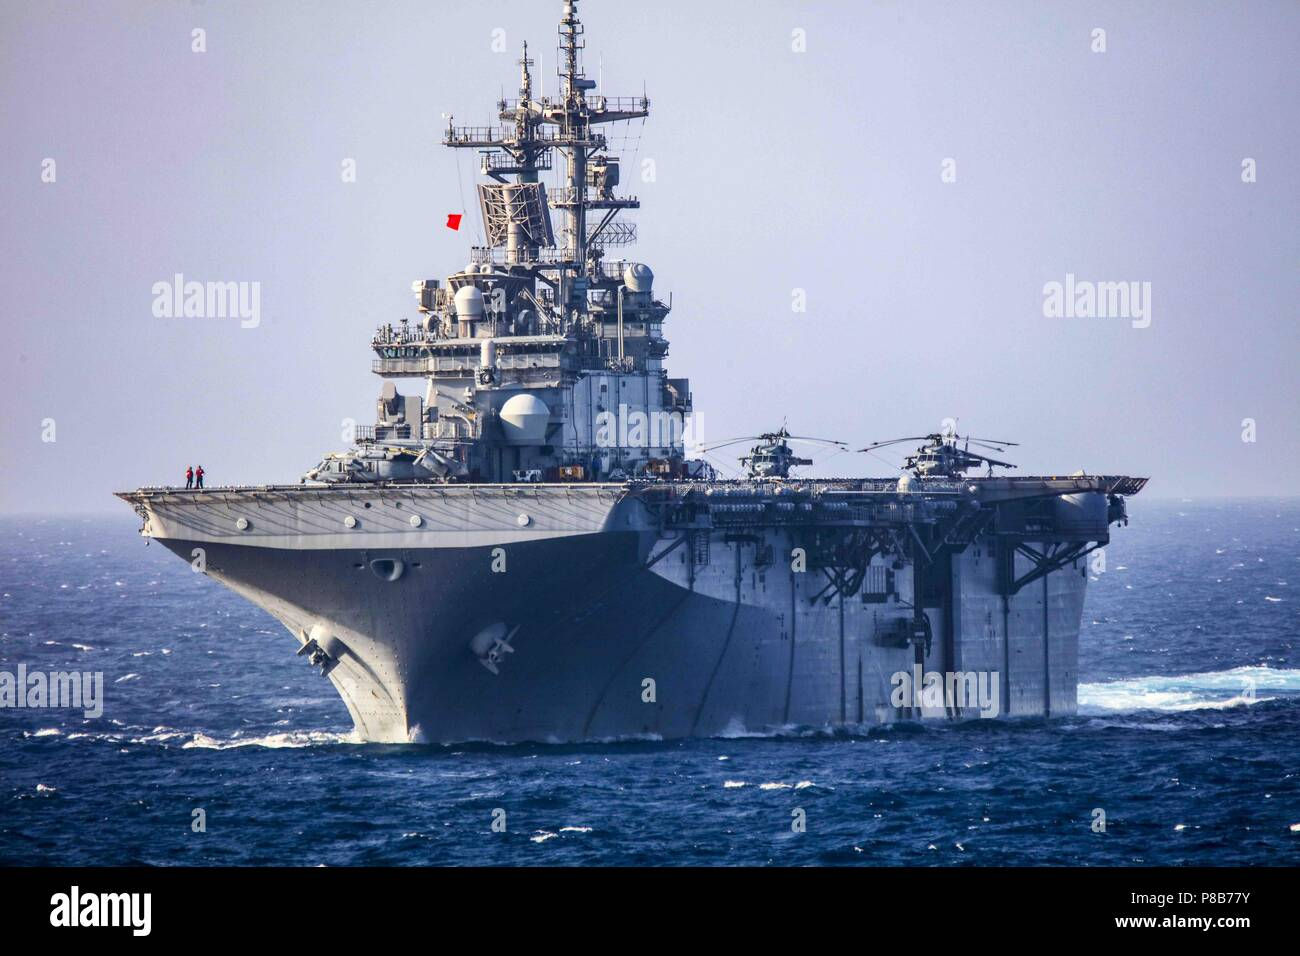 180623-N-VB2976-012 (ATLANTIC OCEAN) The Wasp-class amphibious assault ship USS Kearsarge (LHD 3) maneuvers during a live fire weapons exercise, June 23, 2018. Kearsarge Amphibious Ready Group (ARG) is completing the Navy's first East Coast ARG Surface Warfare Amphibious Tactical Training (SWATT) exercise. SWATT is led by the Naval Surface and Mine Warfighting Development Center (SMWDC) and is designed to increase warfighting proficiency, lethality and interoperability of participating units. (U.S. Navy photo by Mass Communication Specialist 3rd Class Kohen S. Gillis/Released). () - Stock Image